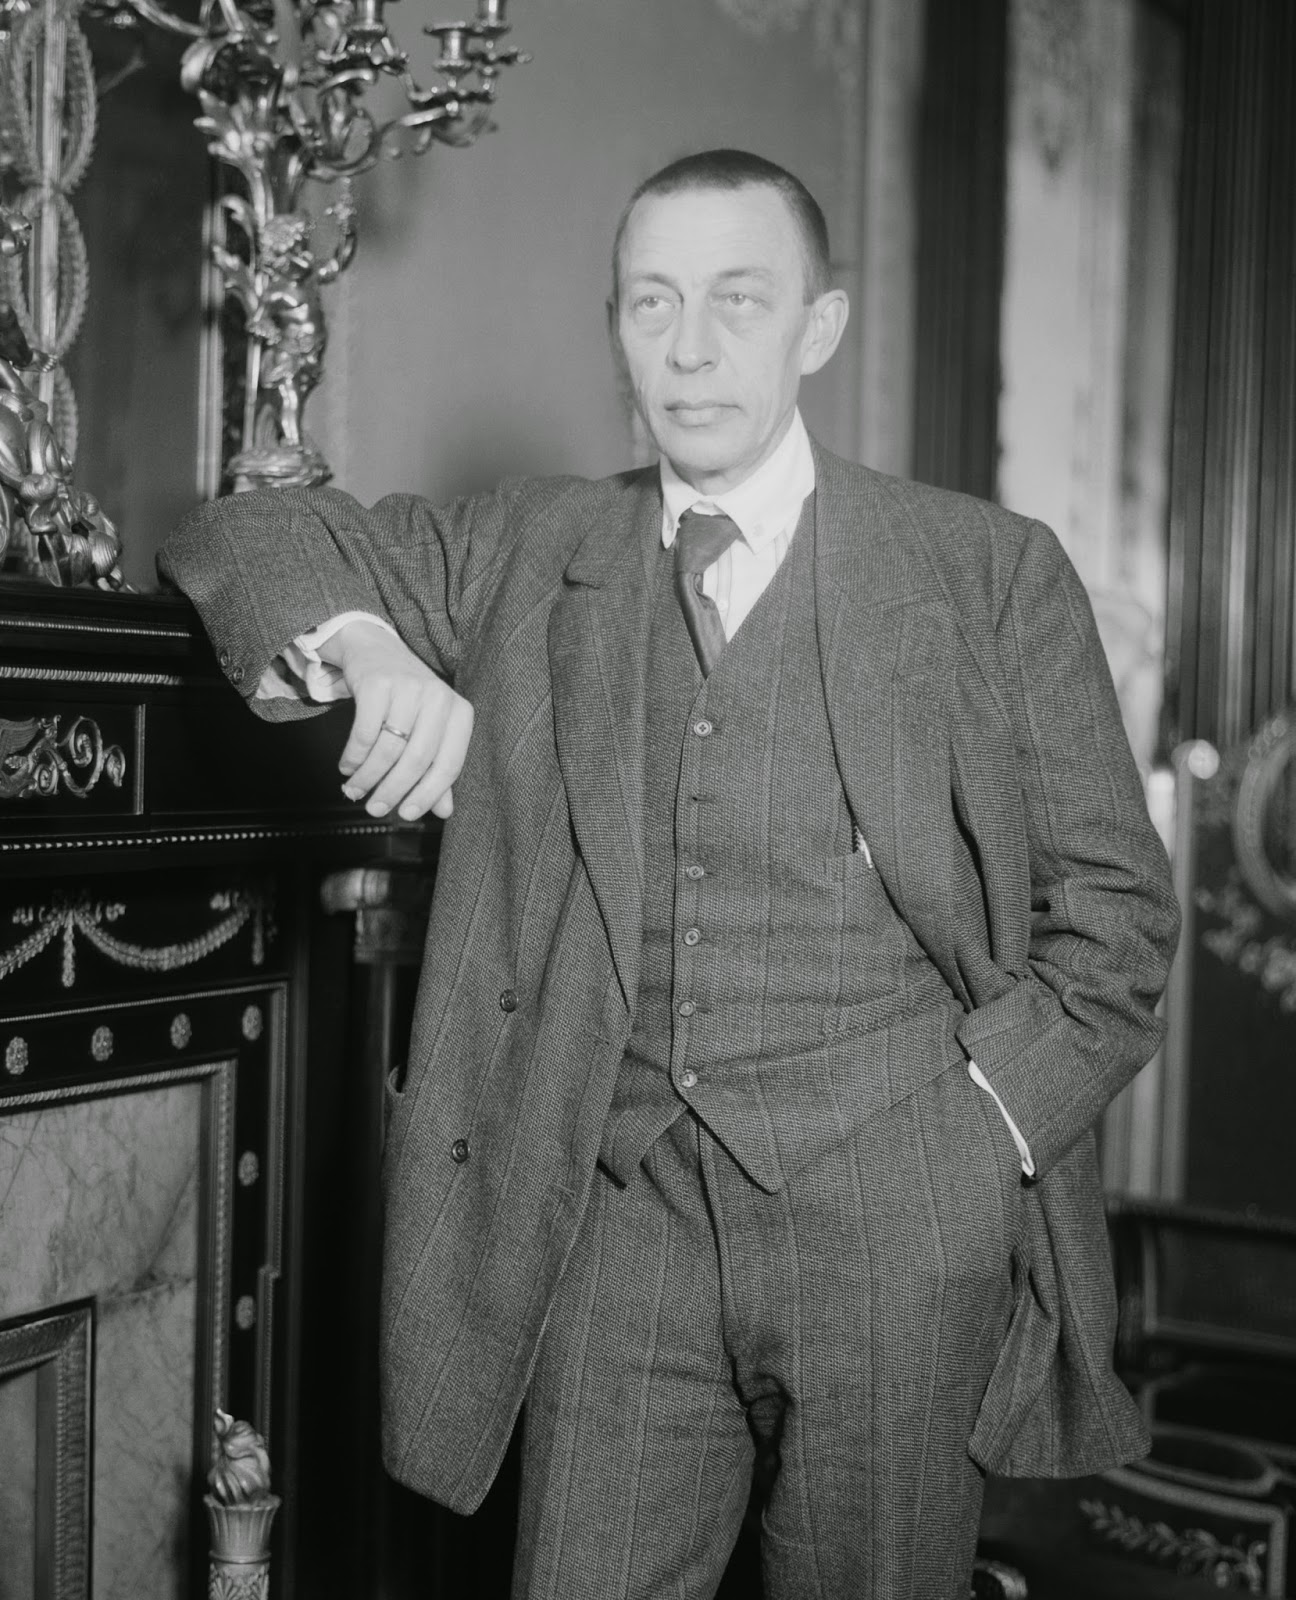 The 15 Greatest Classical Composers Of All Time - Sergei Rachmaninov (1873-1943)